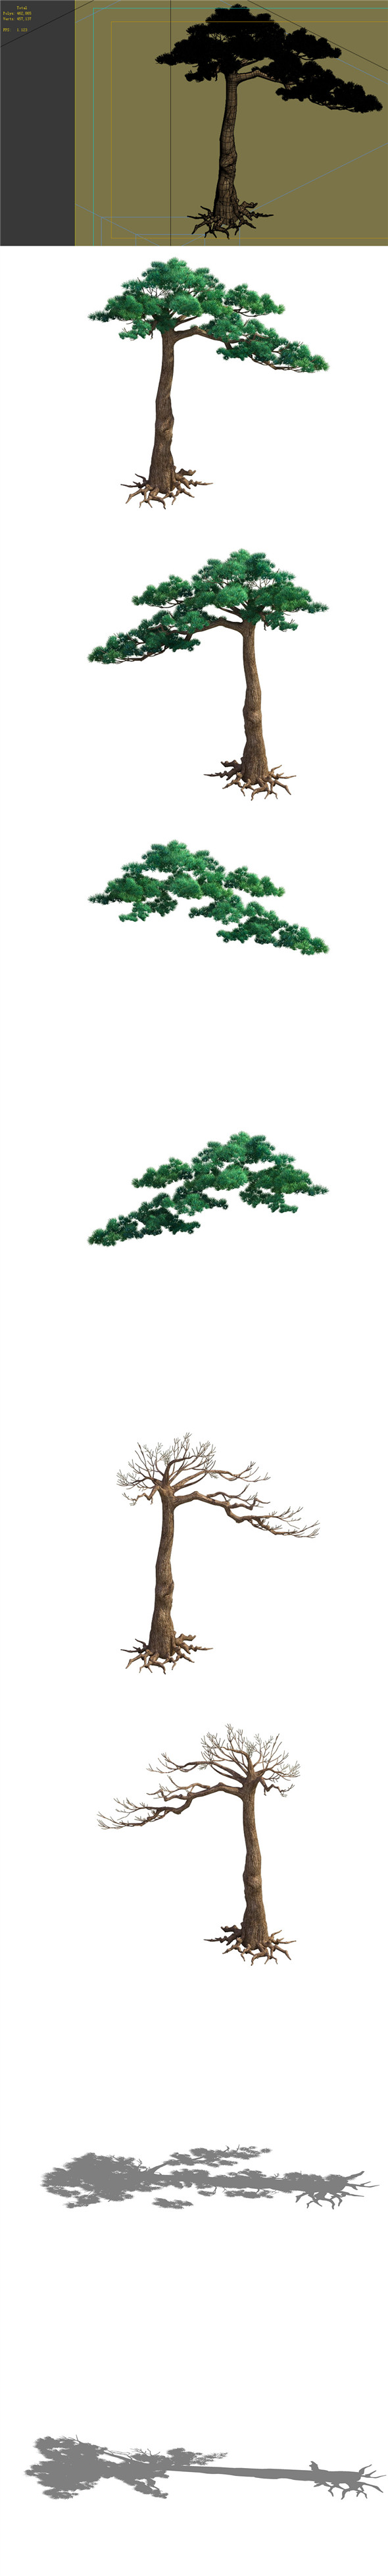 Game Model - Taoist comprehension scene - Pine 07 01 - 3DOcean Item for Sale